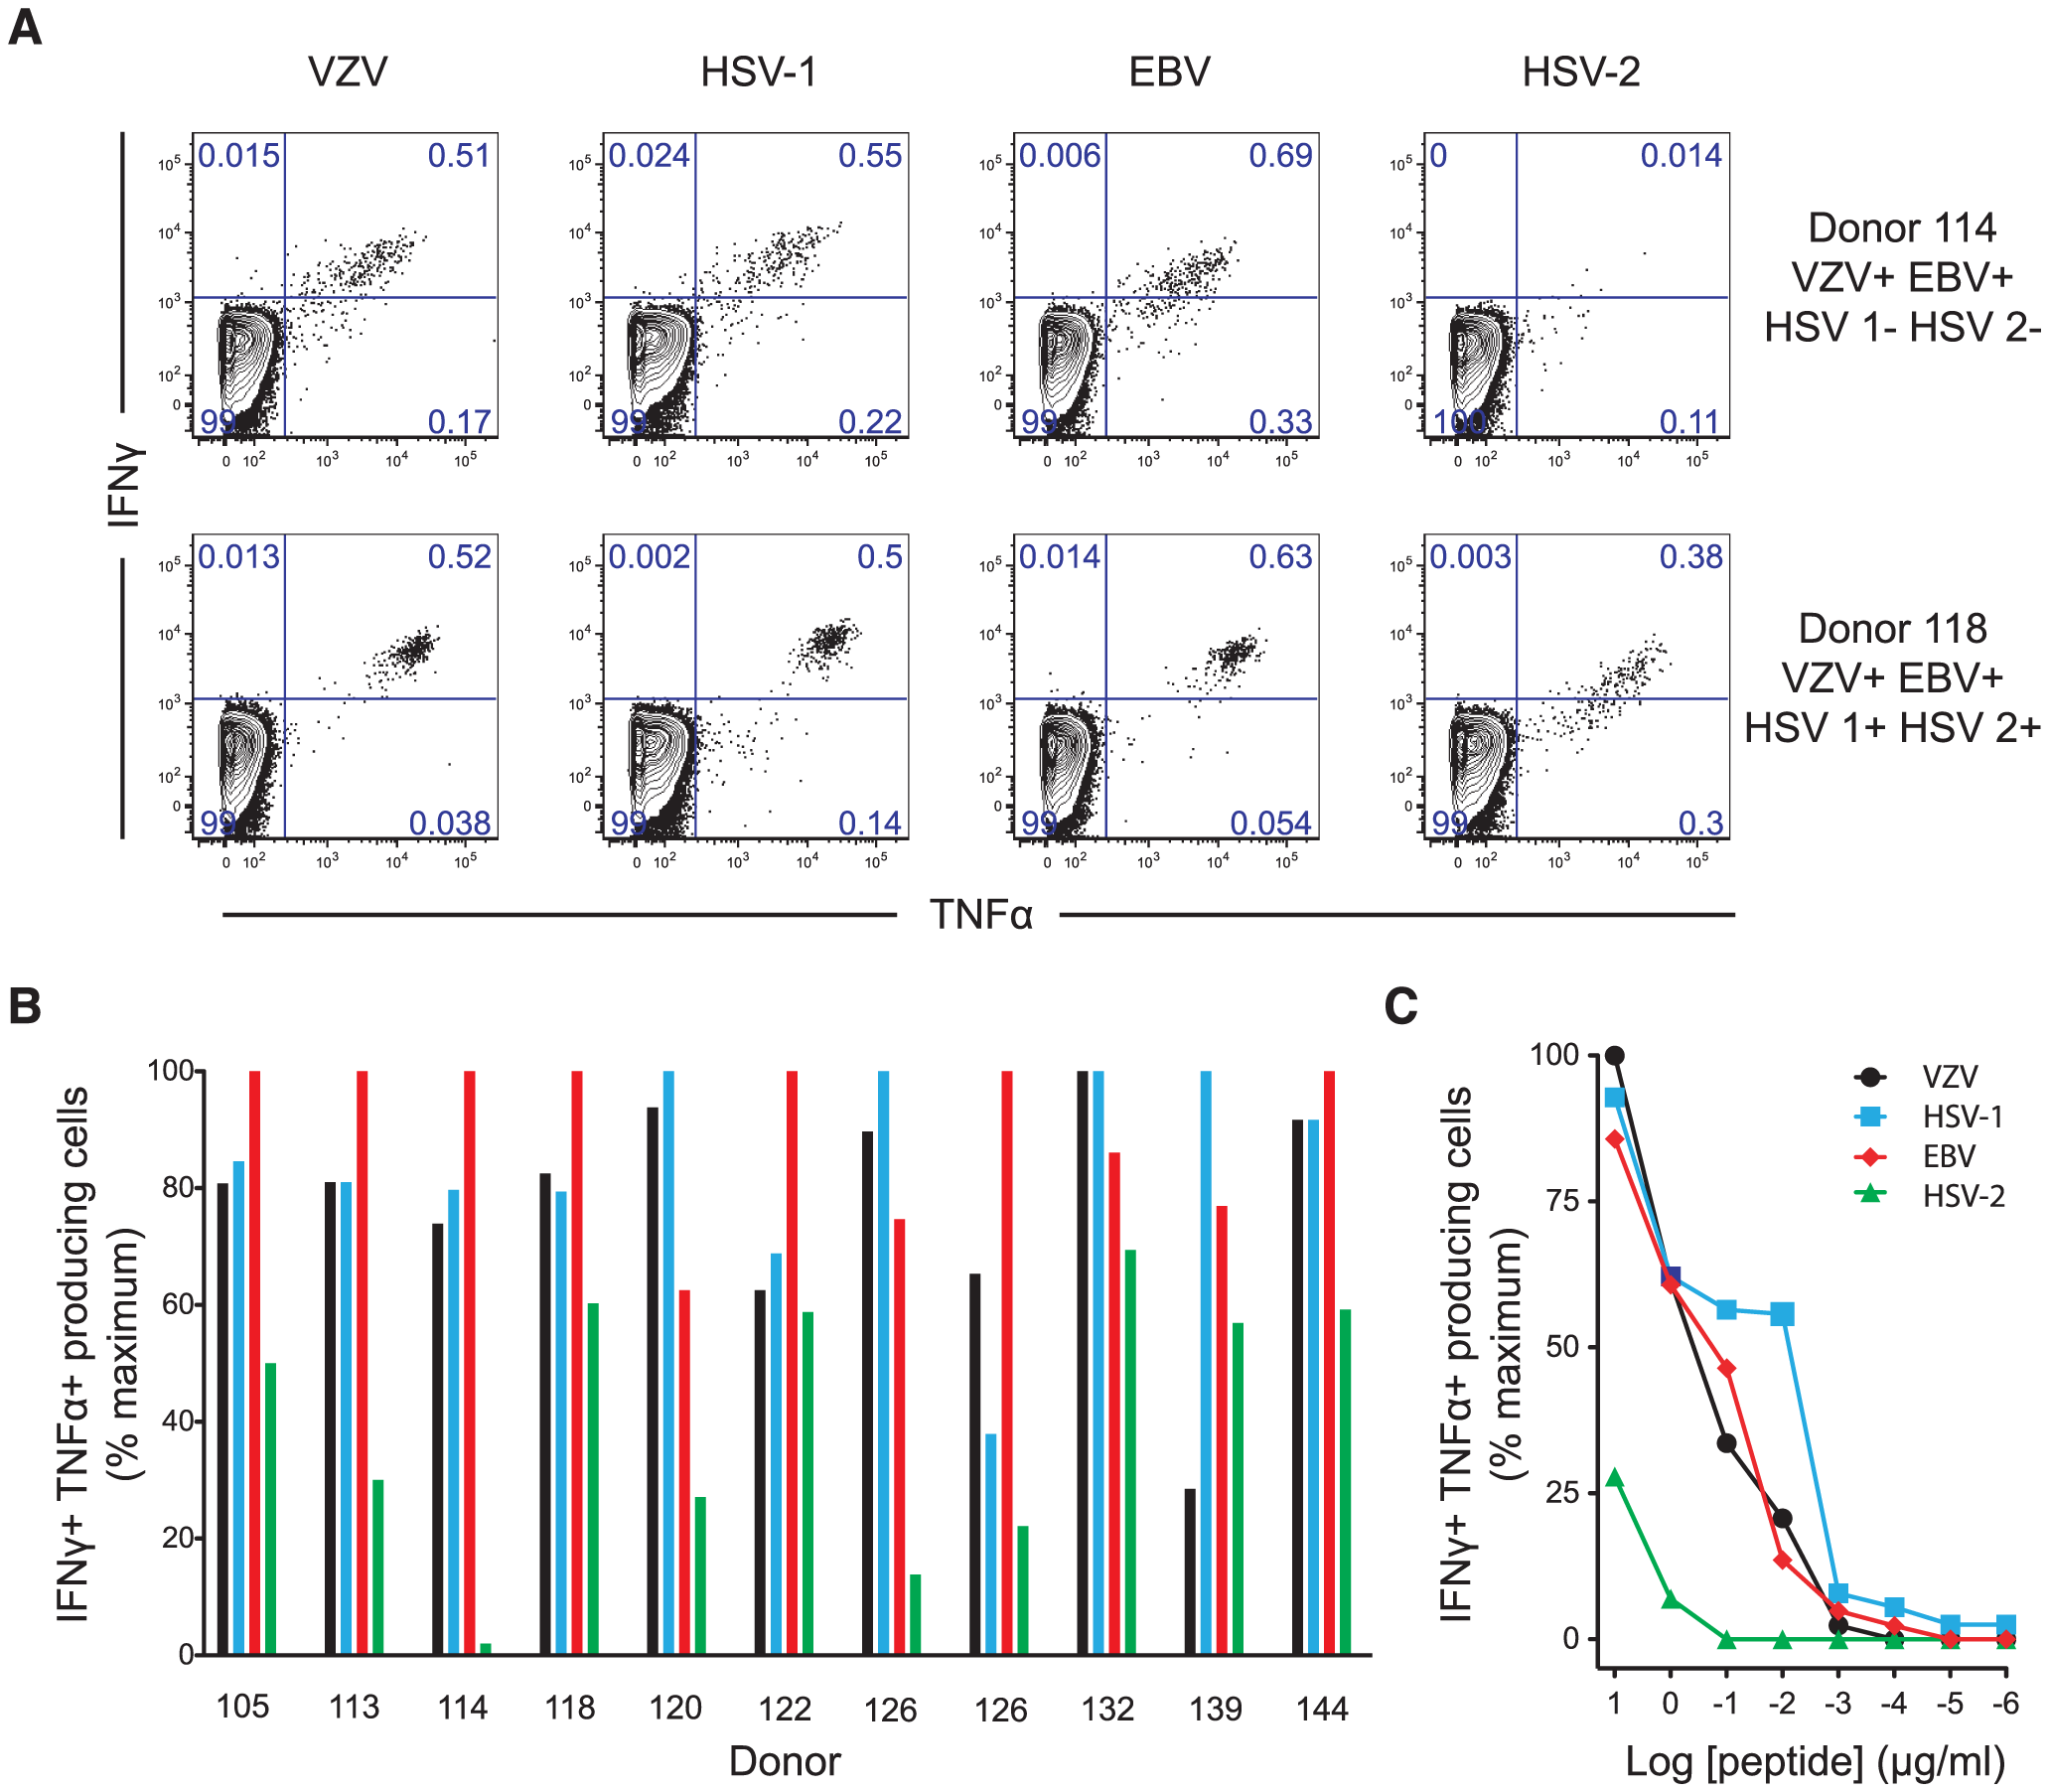 ILI-specific CD8 T cells are broadly reactive, recognizing homologous epitopes conserved between alpha- and gamma-herpesviruses.